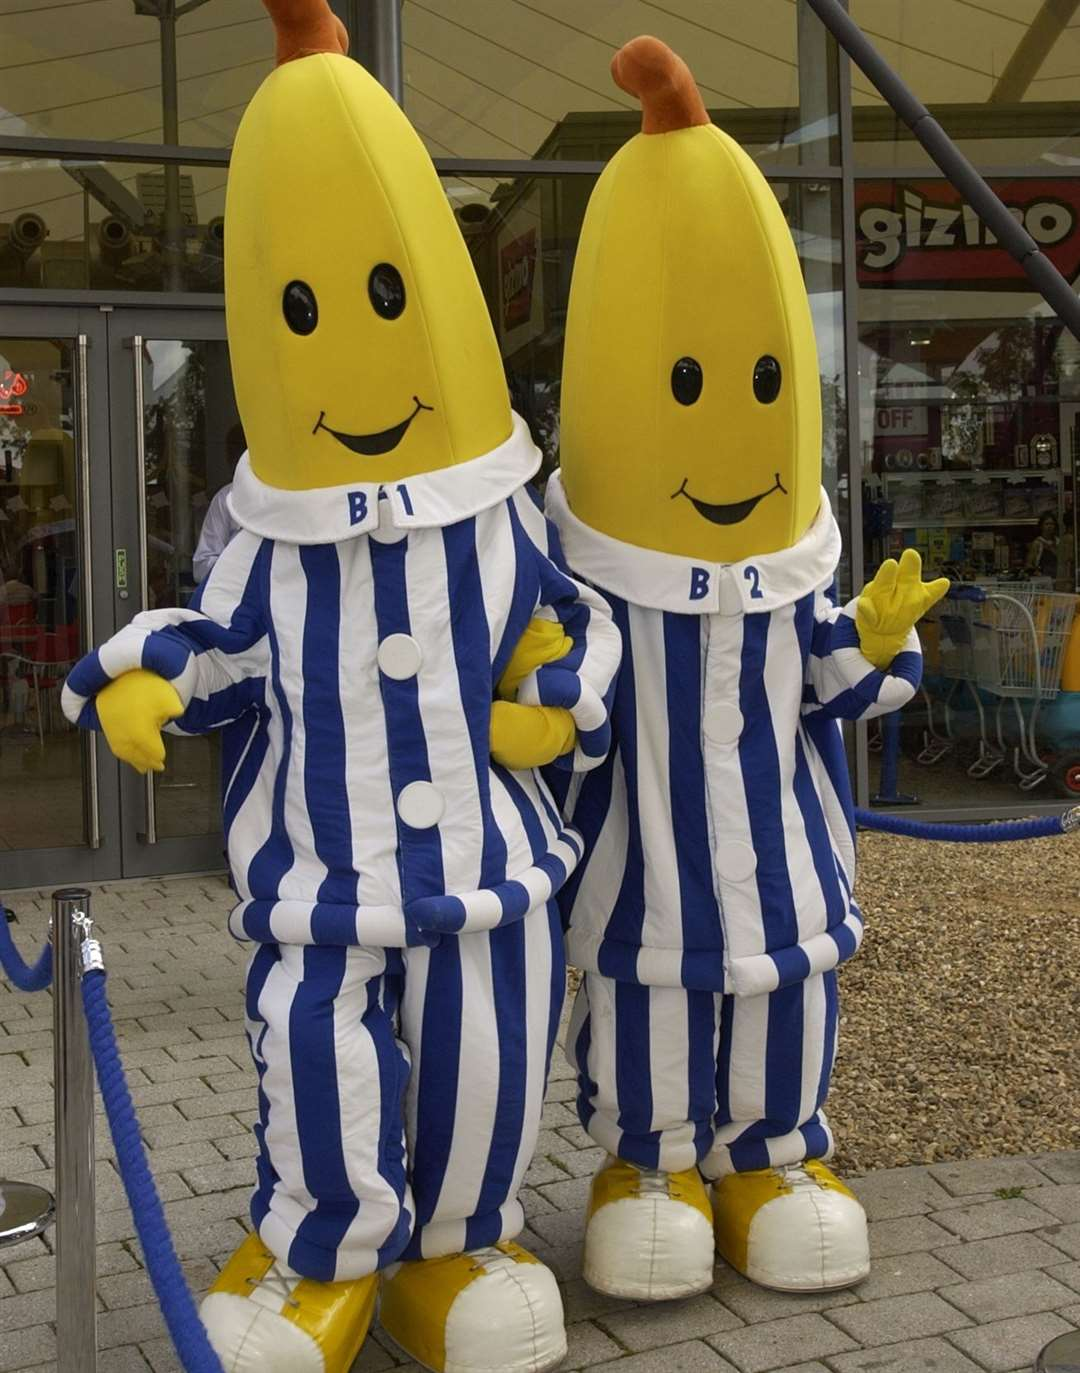 Bananas in Pyjamas at the outlet in 2002 - with gadget shop Gizmo pictured in the background